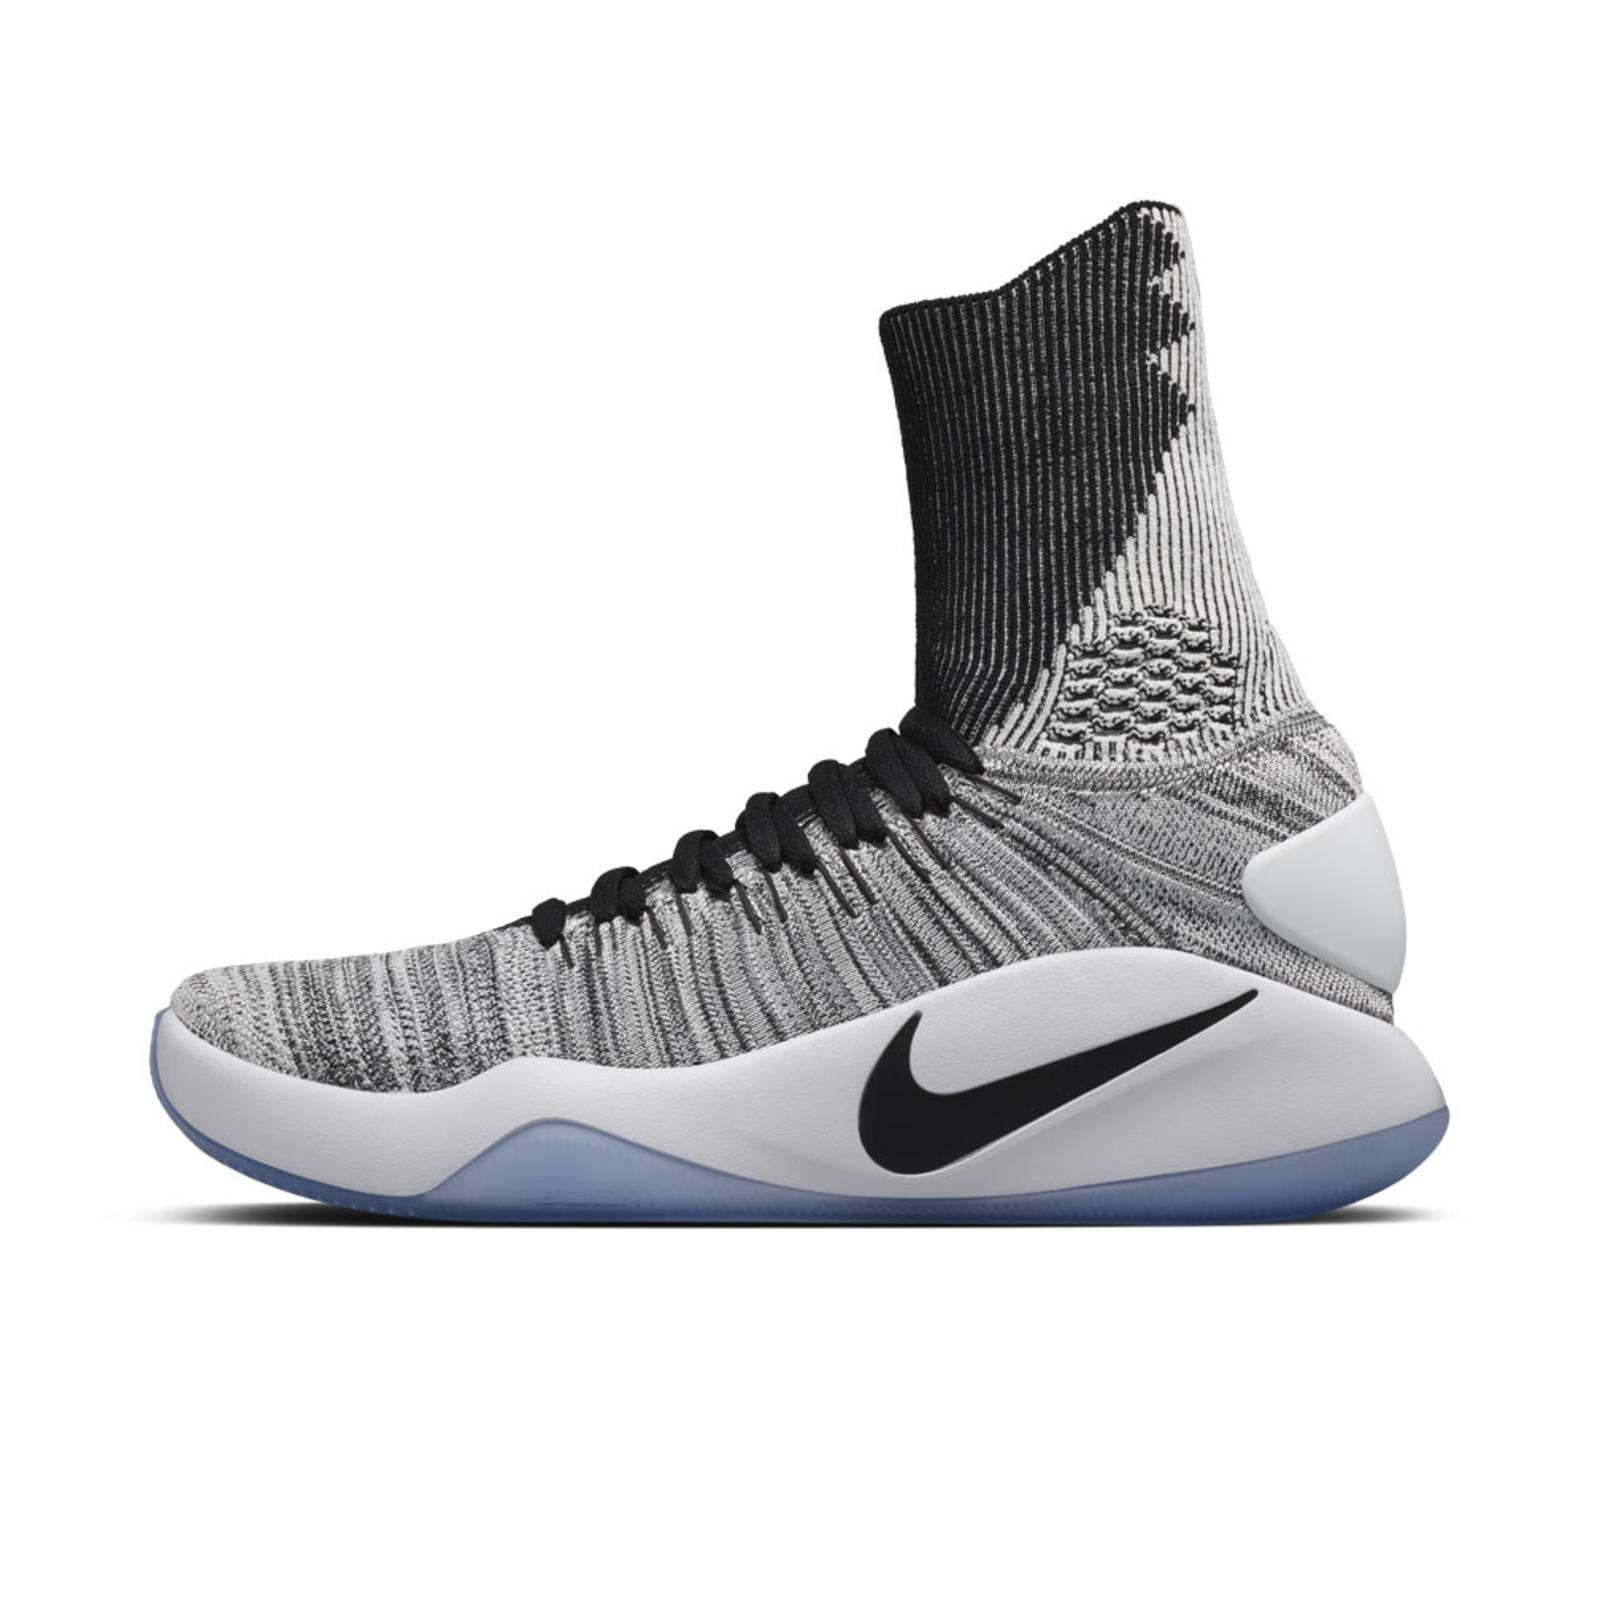 new product 2b70a 41306 ... Nike Chaussures HYPERDUNK 08 Nike ...